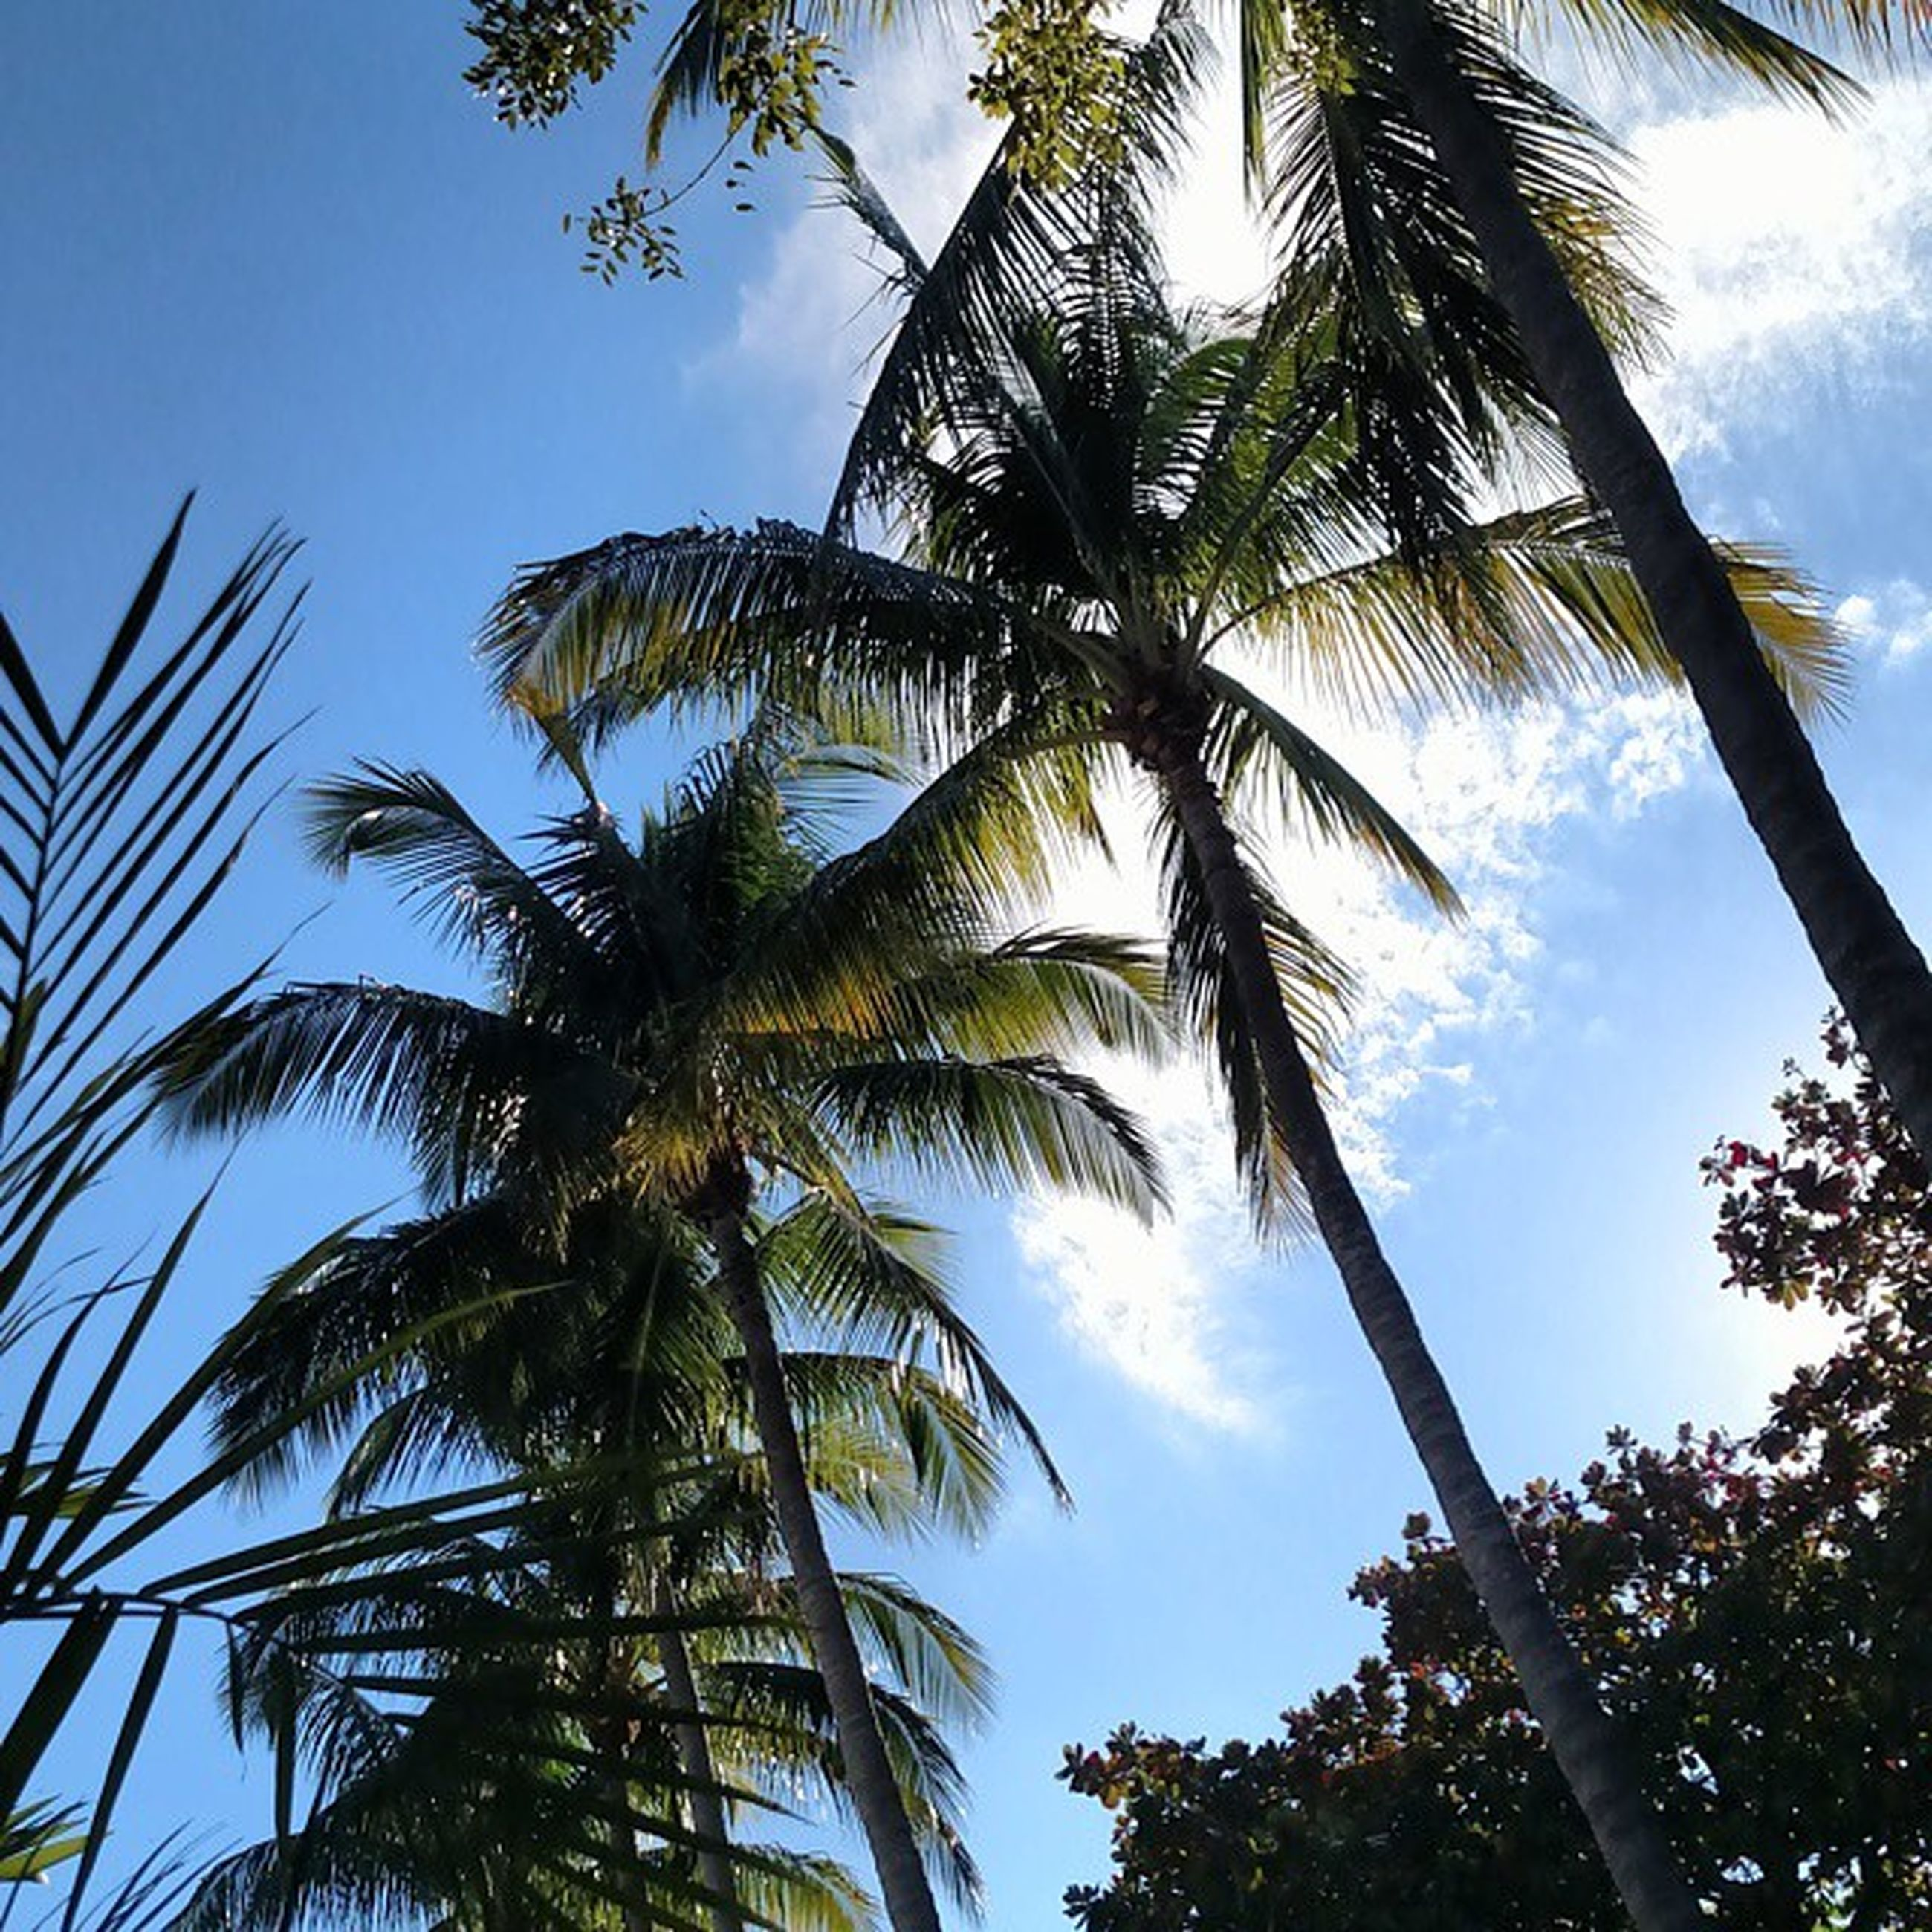 tree, palm tree, low angle view, growth, sky, tree trunk, tranquility, branch, nature, beauty in nature, coconut palm tree, scenics, blue, tall - high, palm leaf, green color, day, leaf, tropical tree, tranquil scene